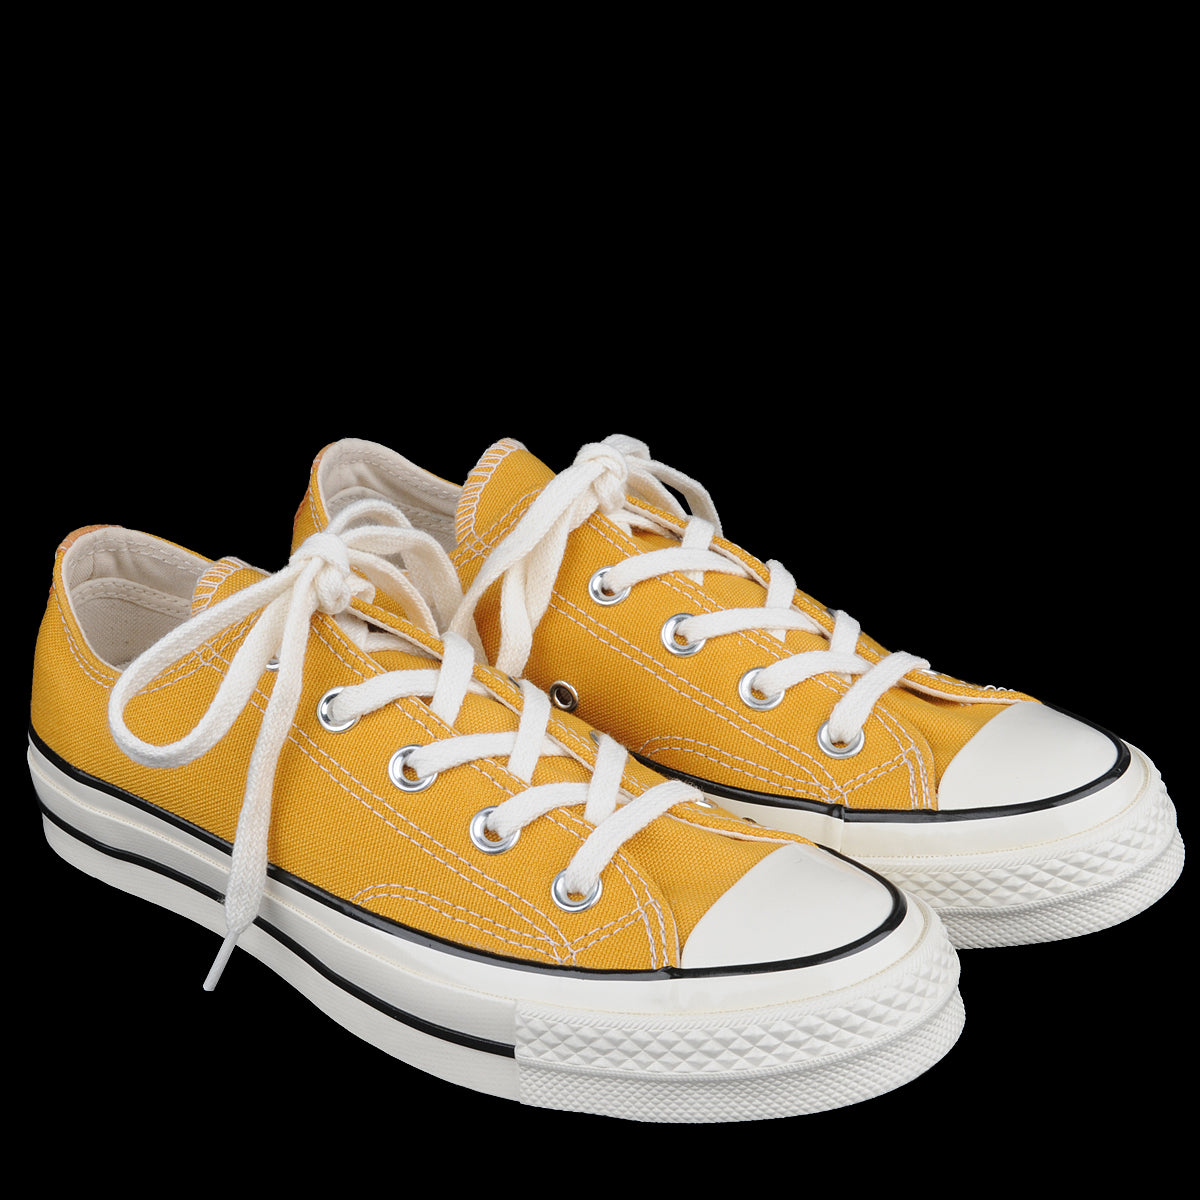 1298019eca22 Converse - Chuck Taylor All Star 70 Ox in Sunflower - UNIONMADE